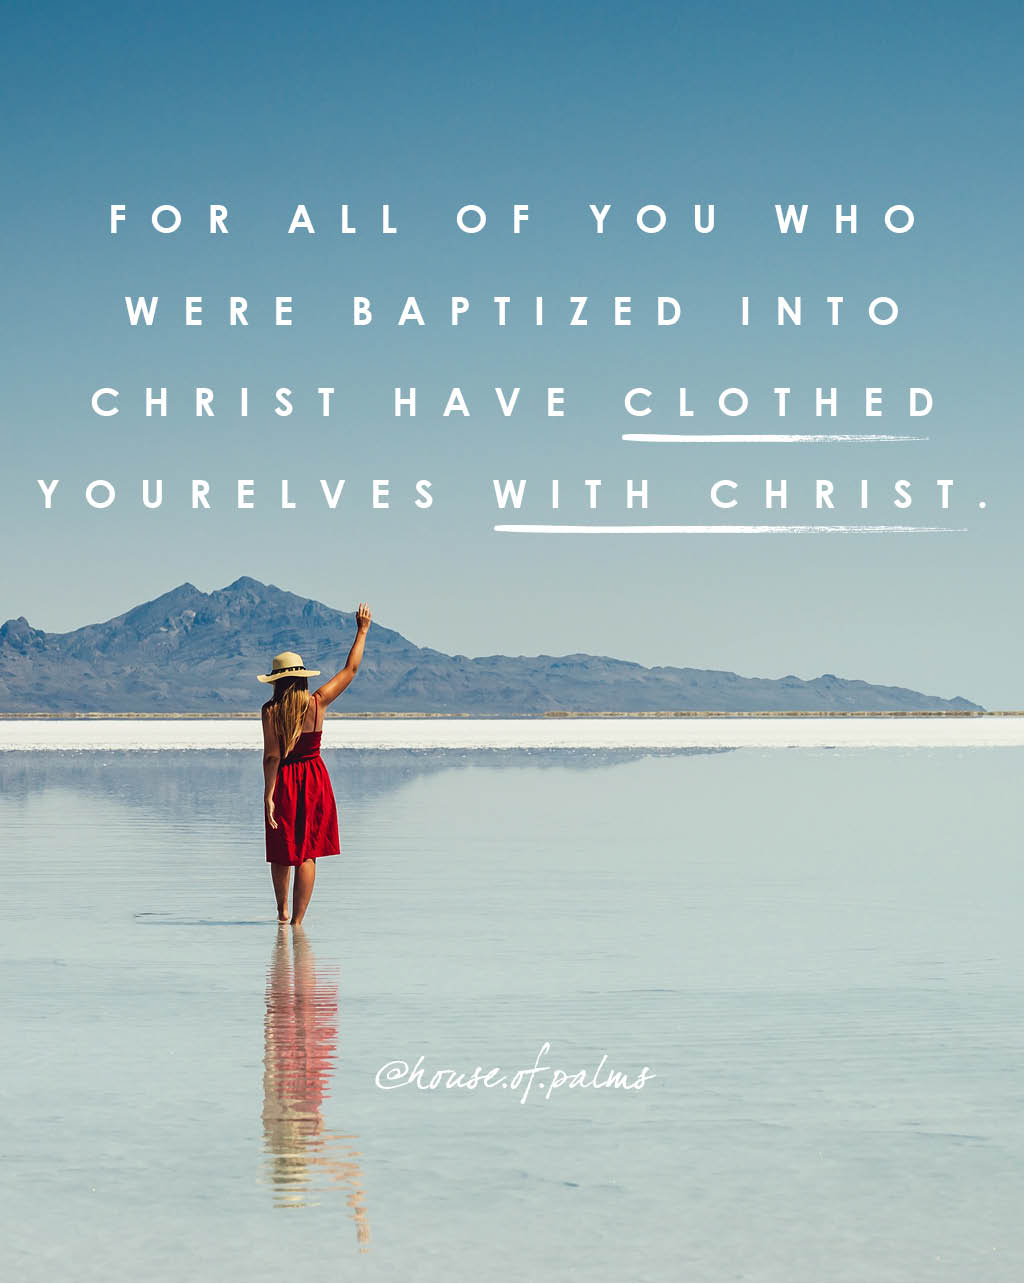 For all of you who were baptized into Christ have clothed yourselves with Christ